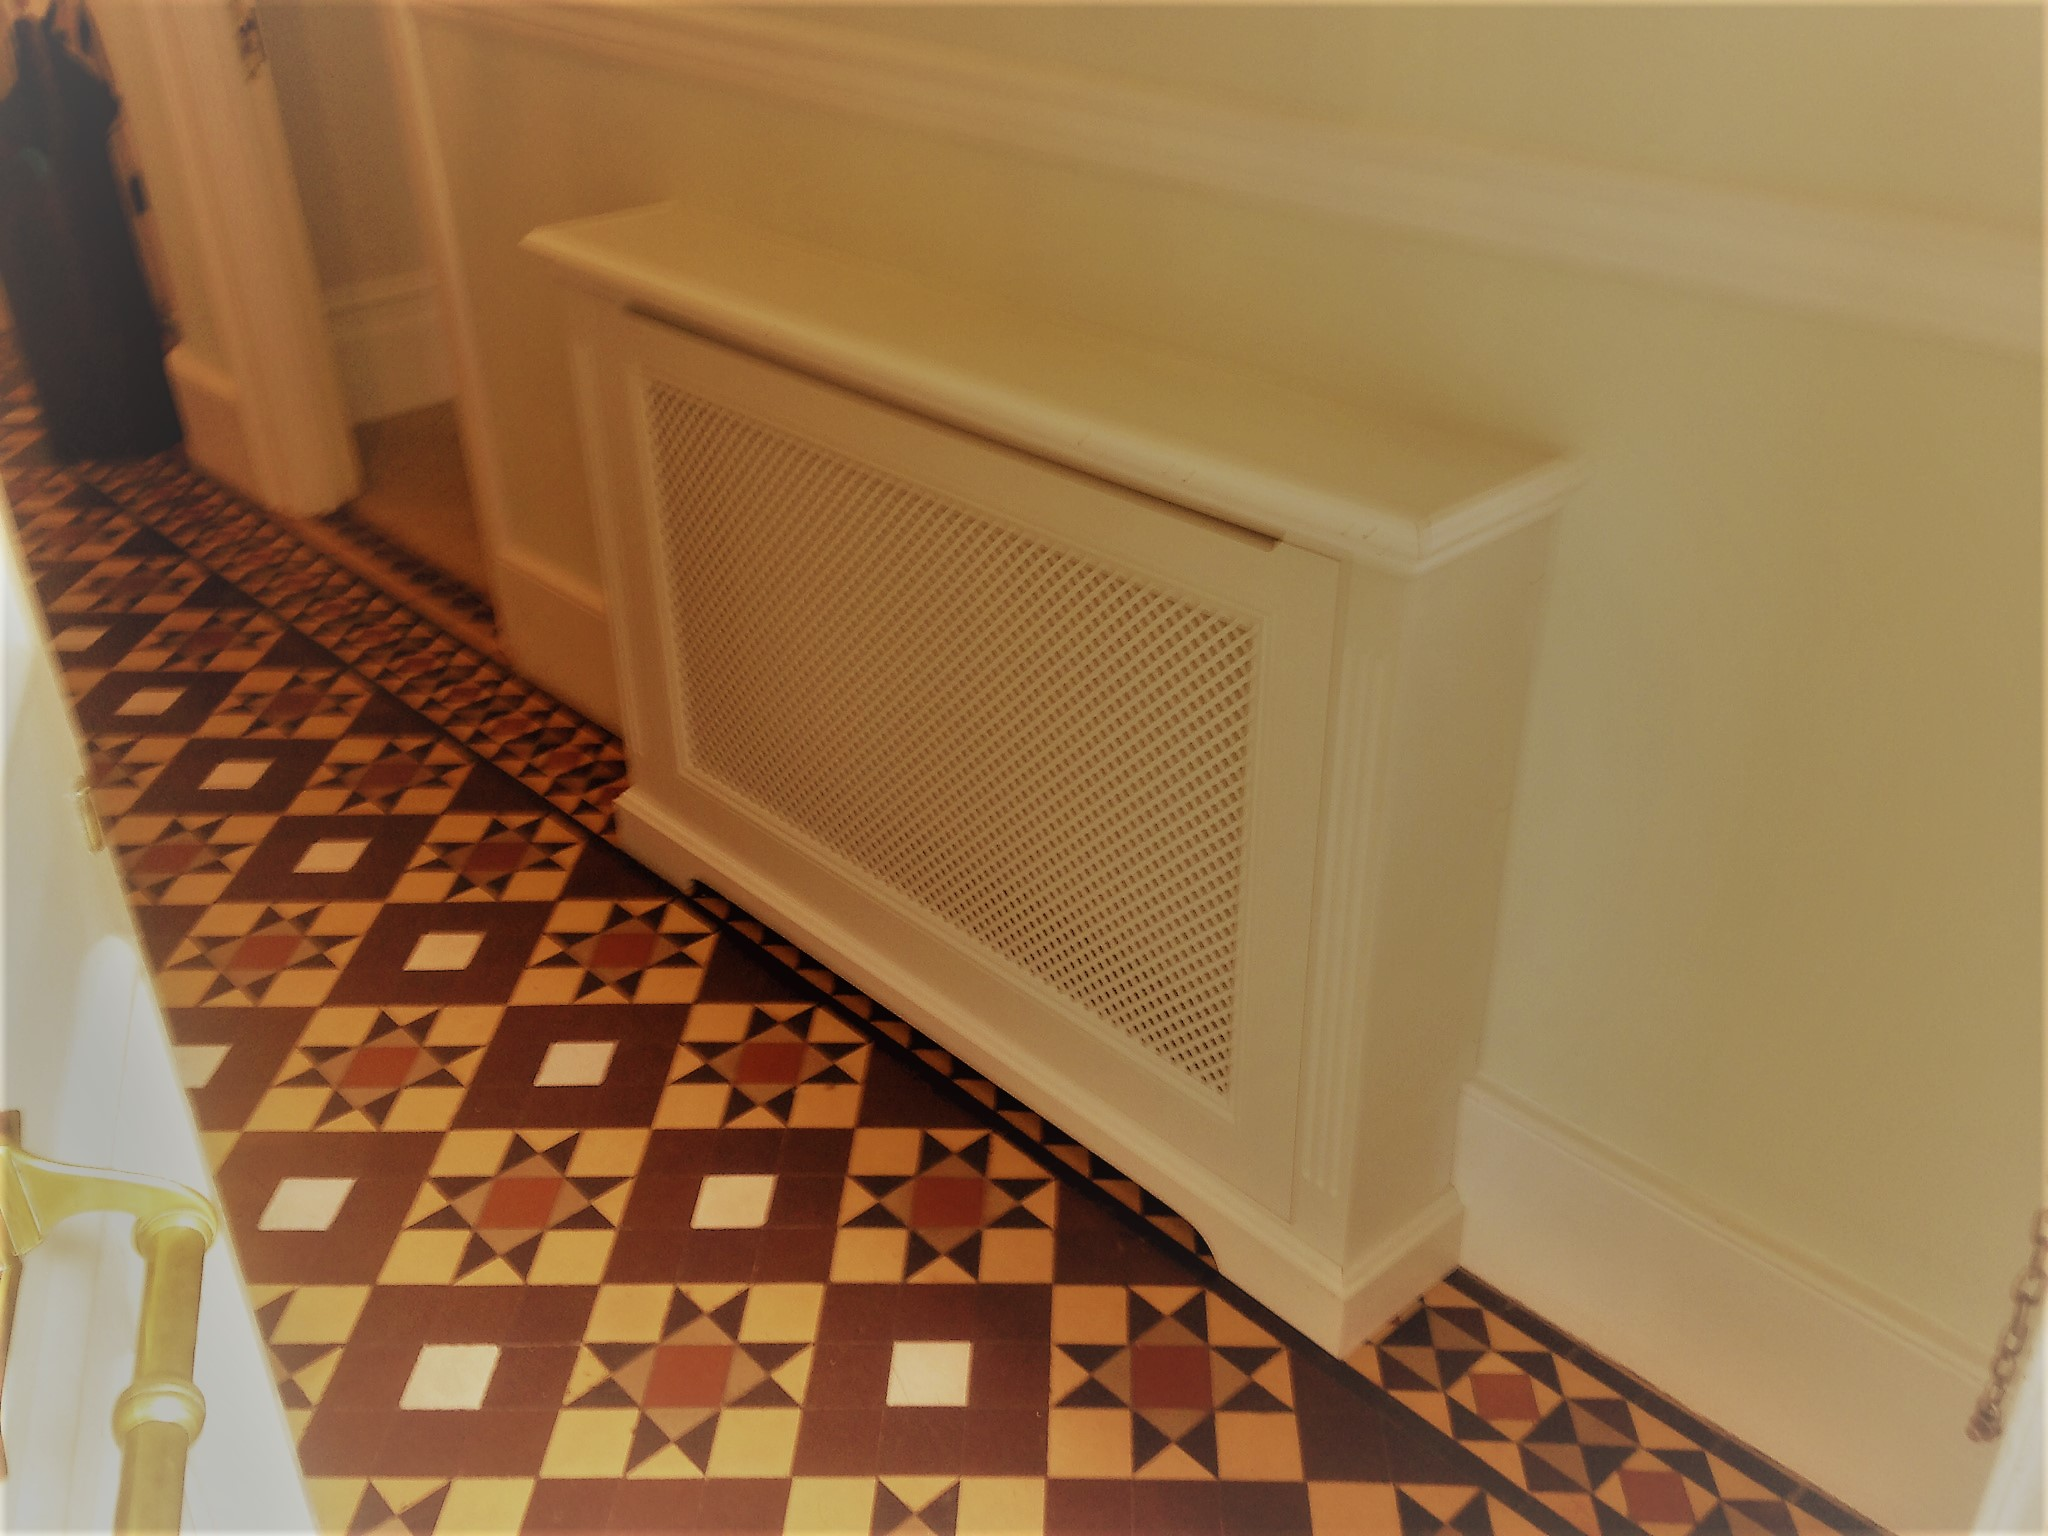 Radiator covers help to hide those unsightly objects.